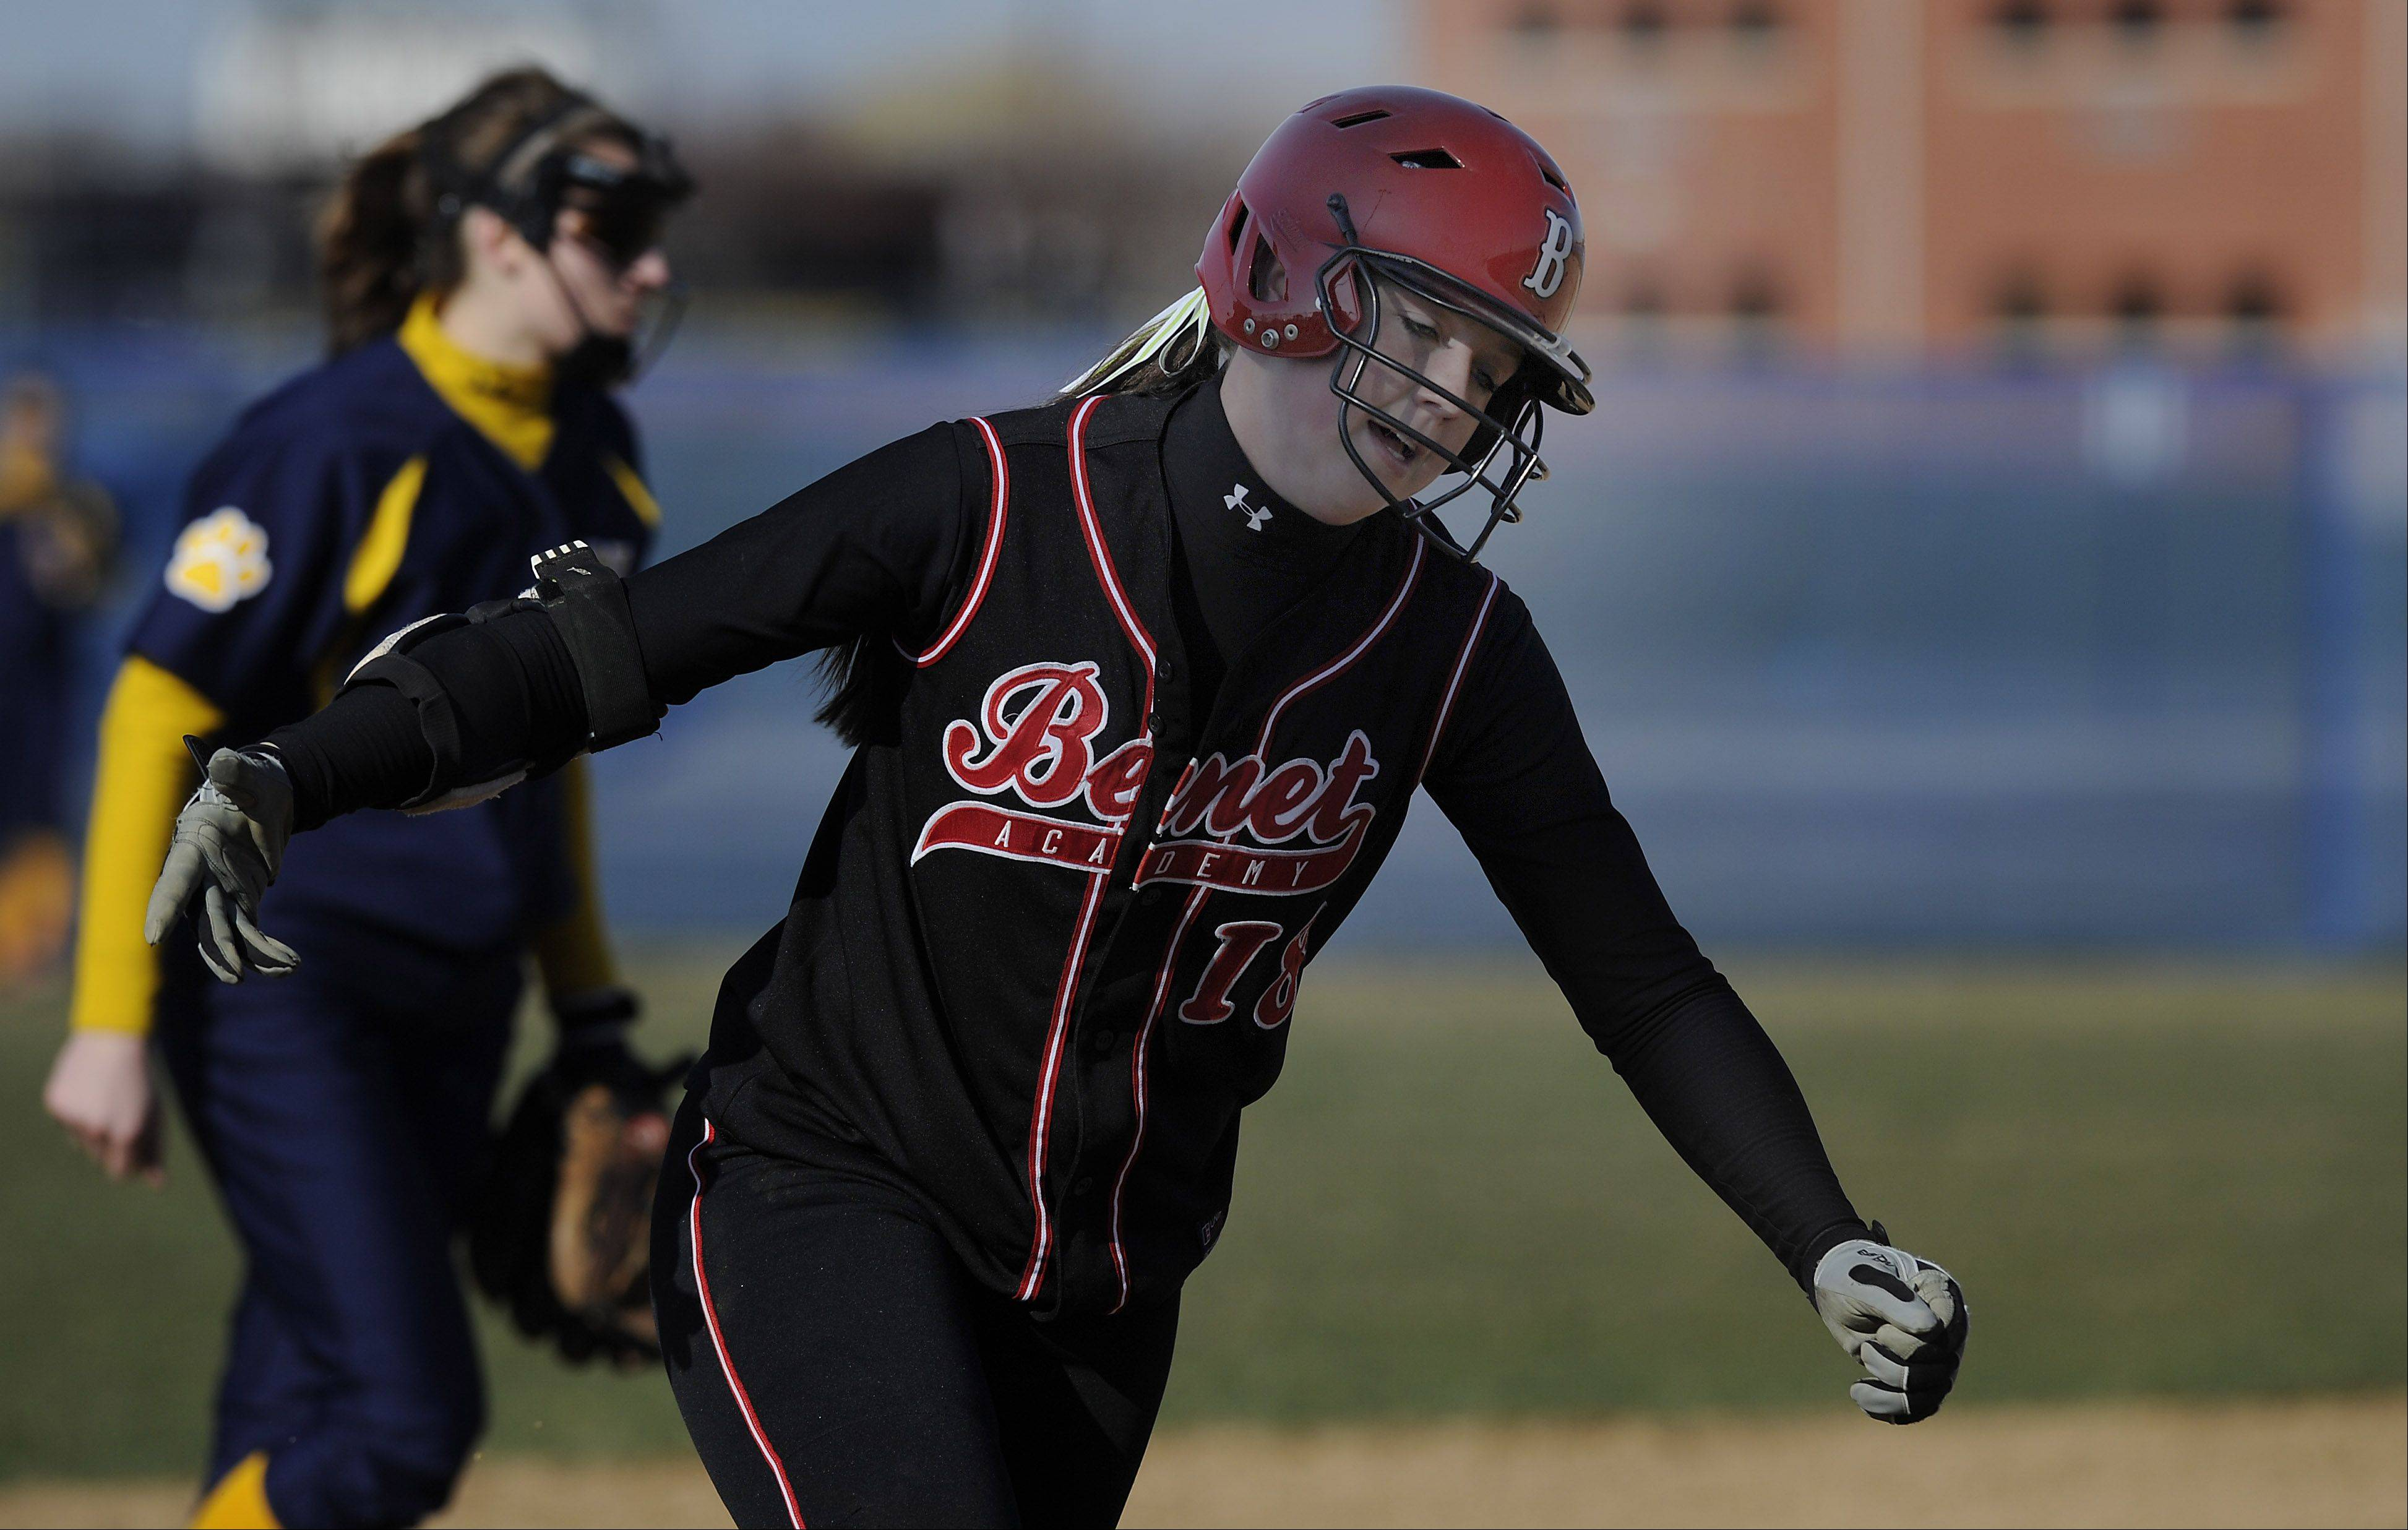 Benet Academy's Maeve McGuire rounds third base heading for home after she plaster one over the left-center field fence for a second inning grand slam in the girls softball game against Neuqua Valley High School on Monday.